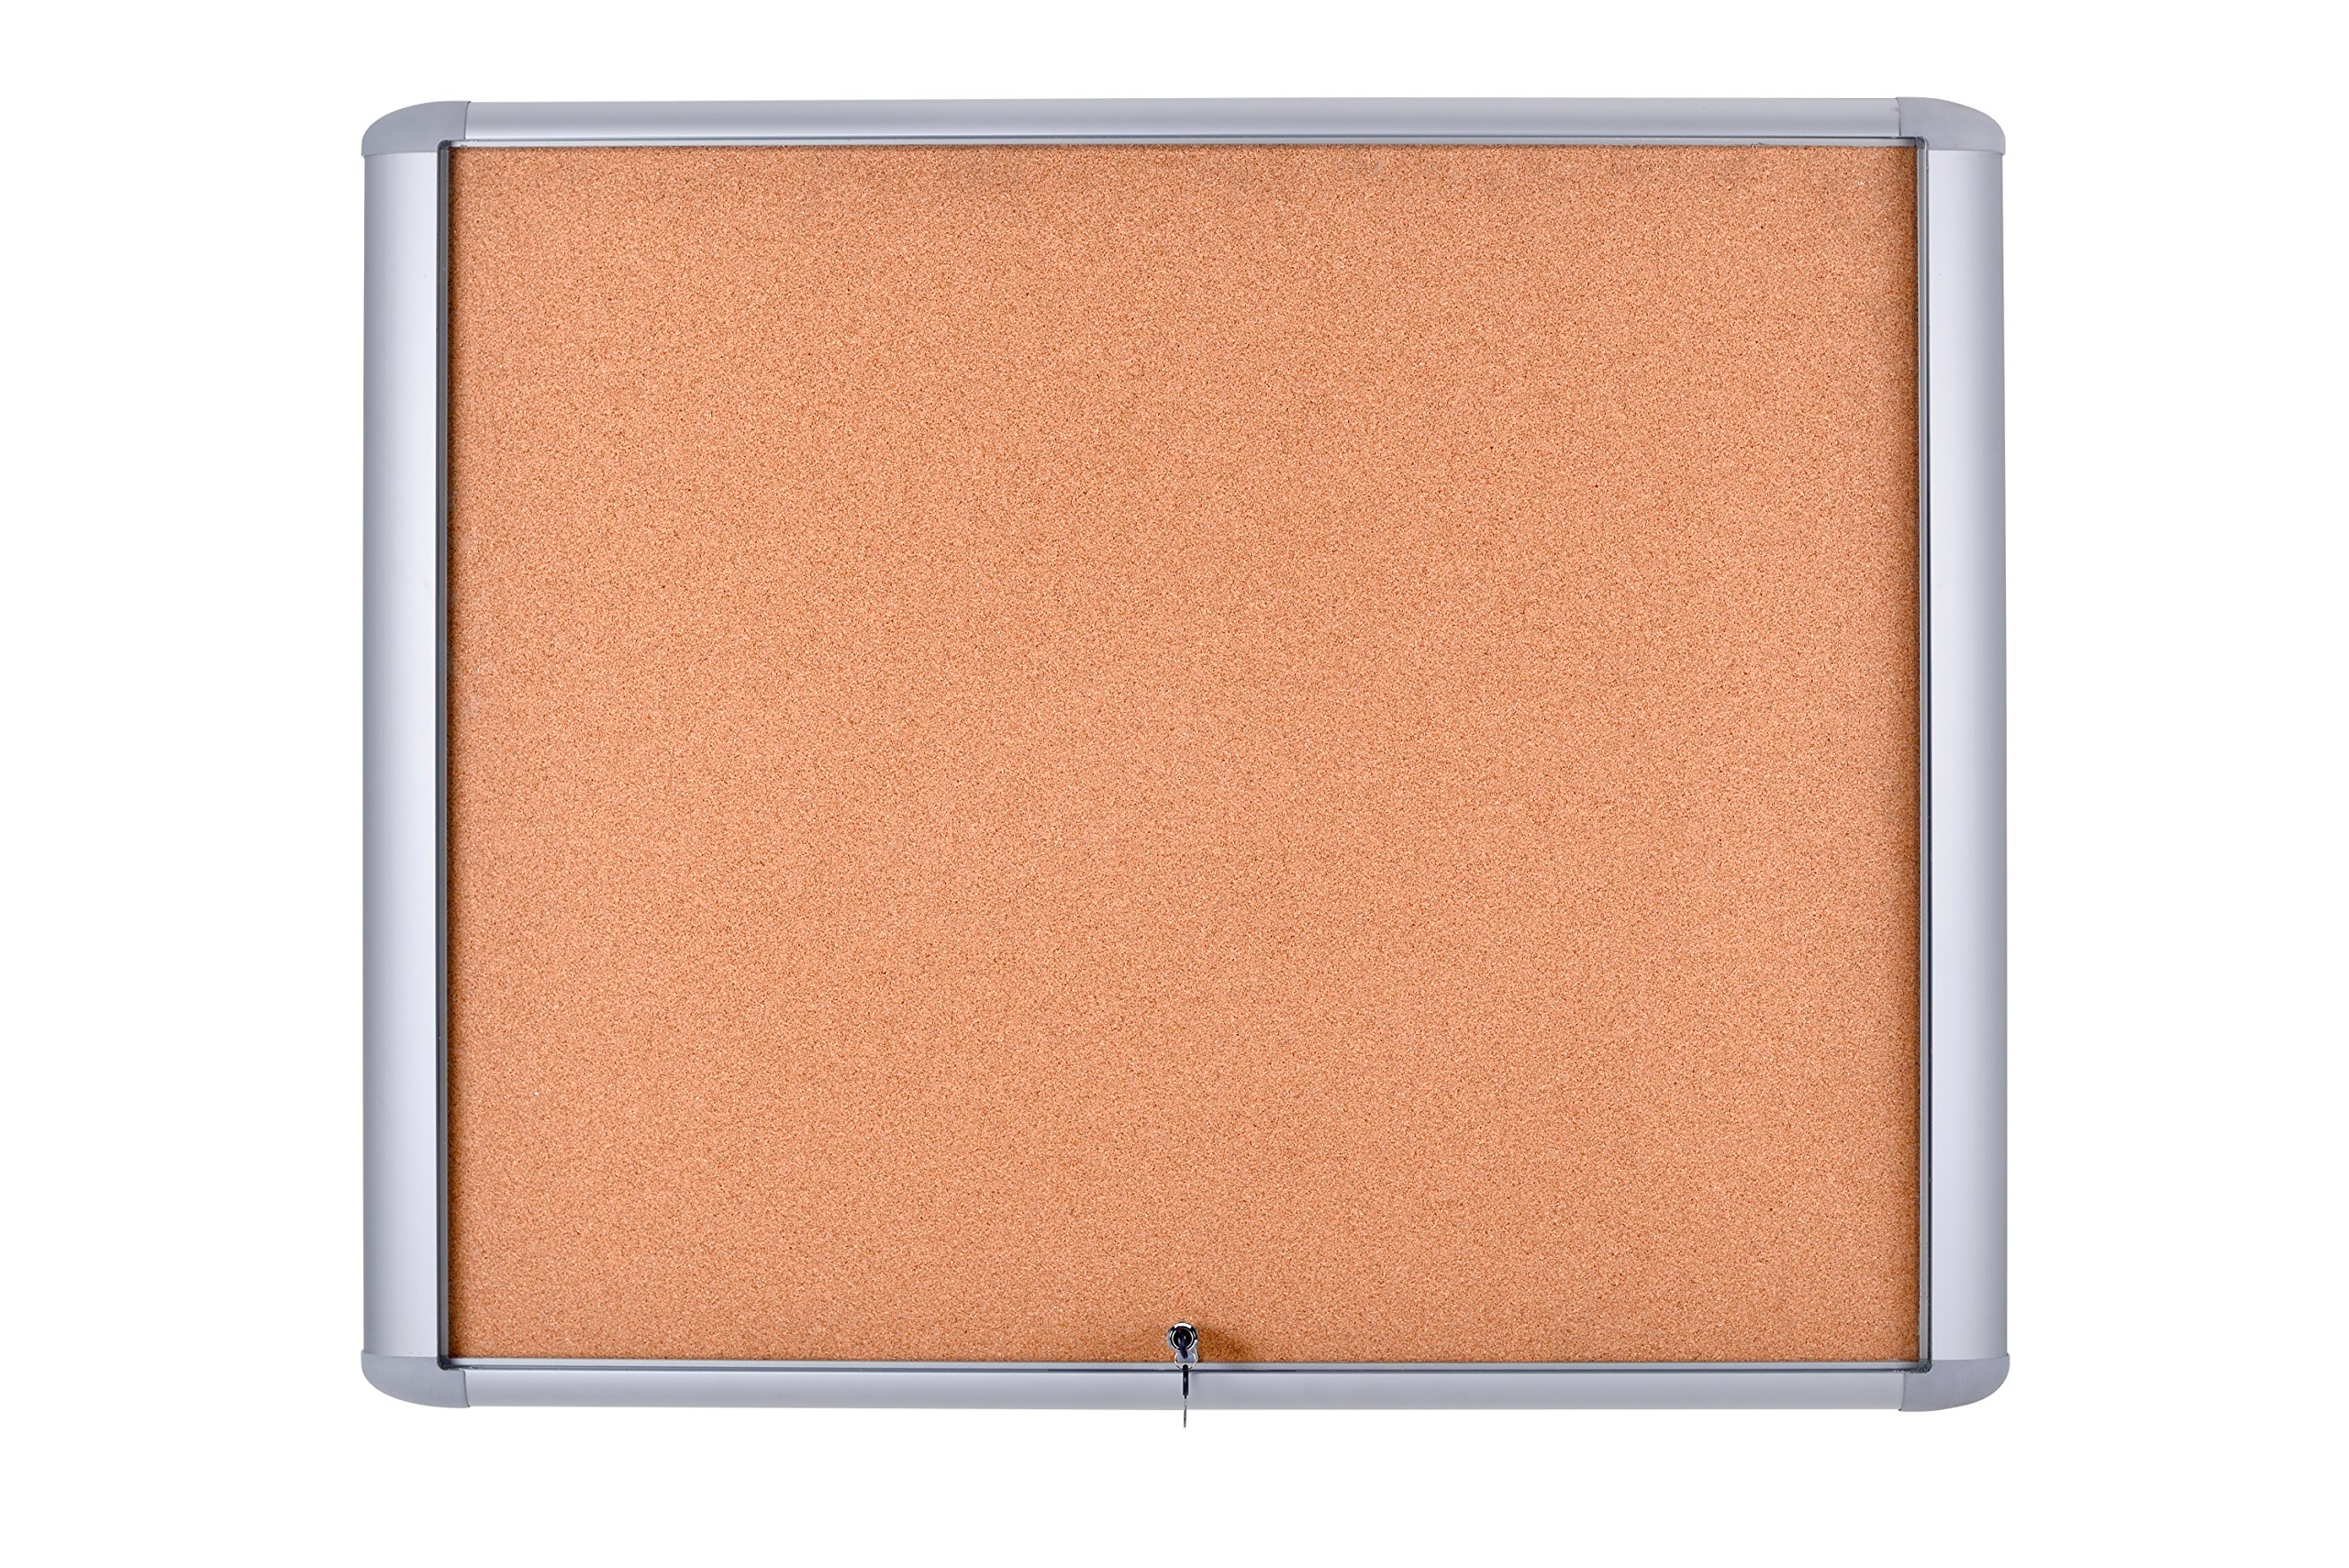 MasterVision Enclosed Bulletin Board Outdoor Water resistant, Cork Surface, 47'' x 38.3'' with Aluminum Frame